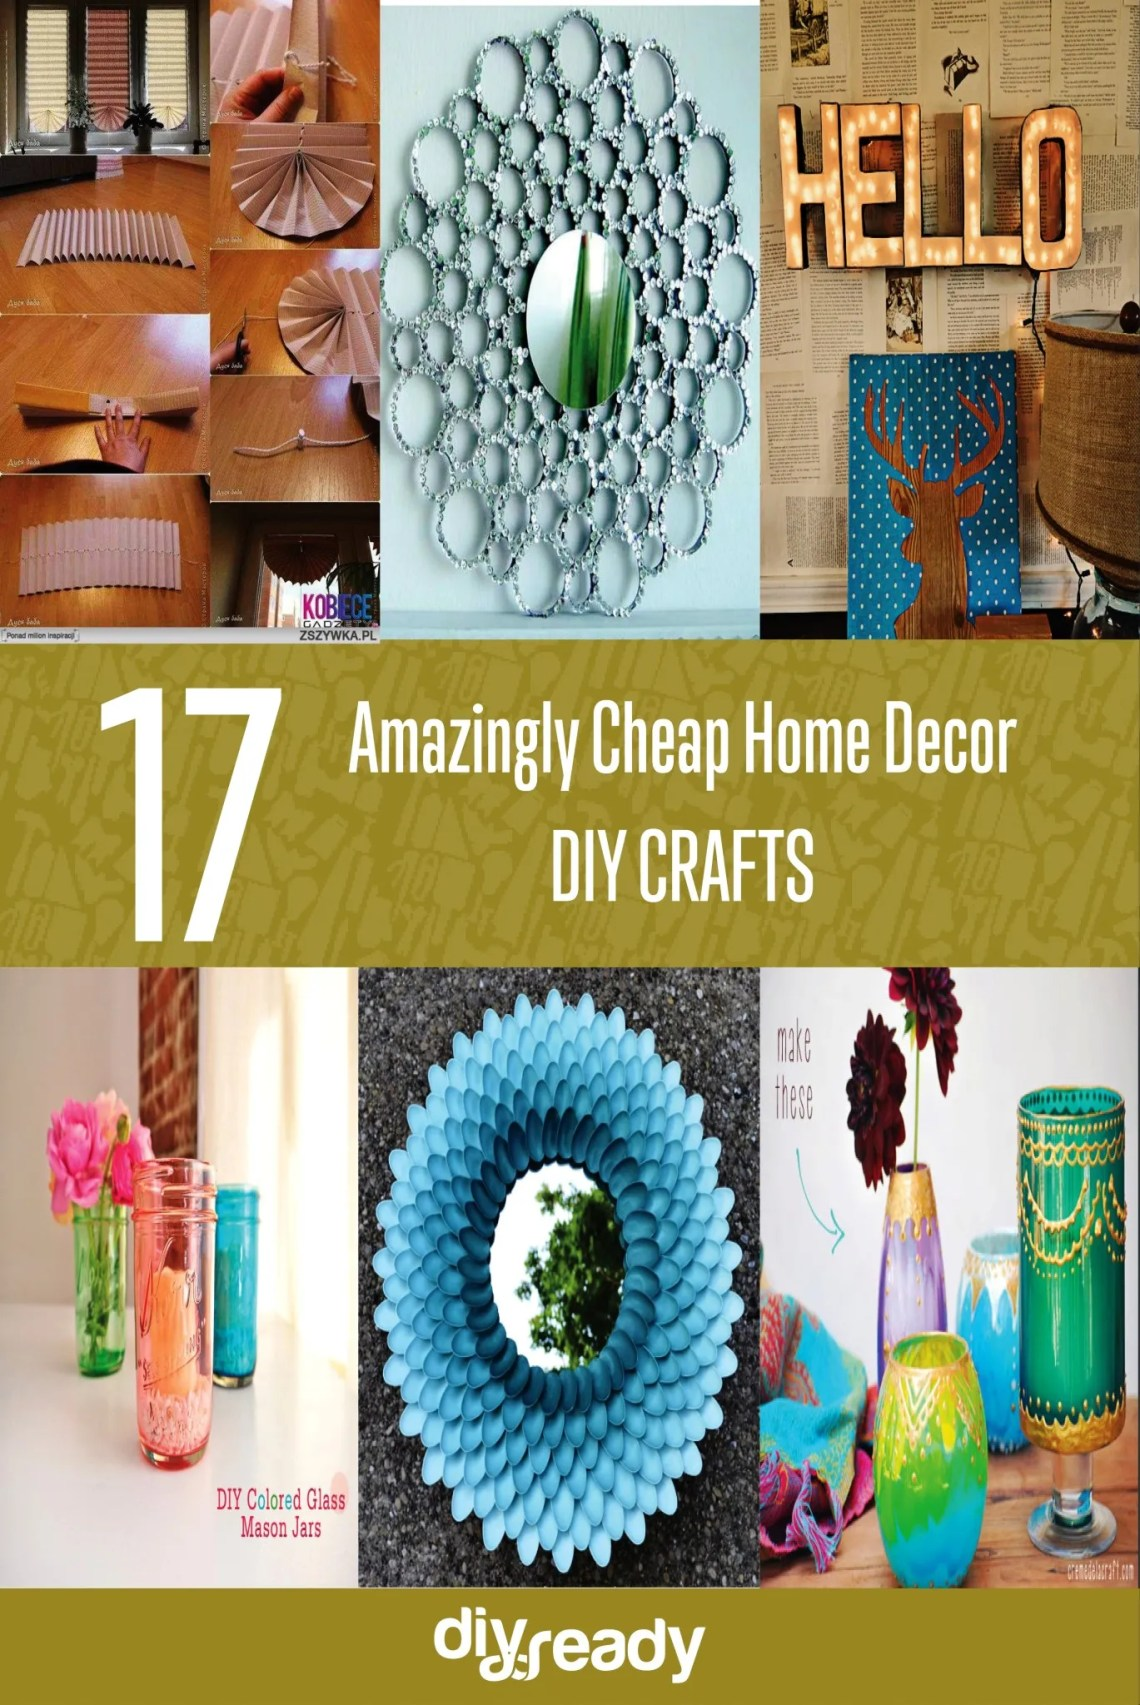 17 Amazingly Cheap Home Decor | DIY Crafts - New Craft Works